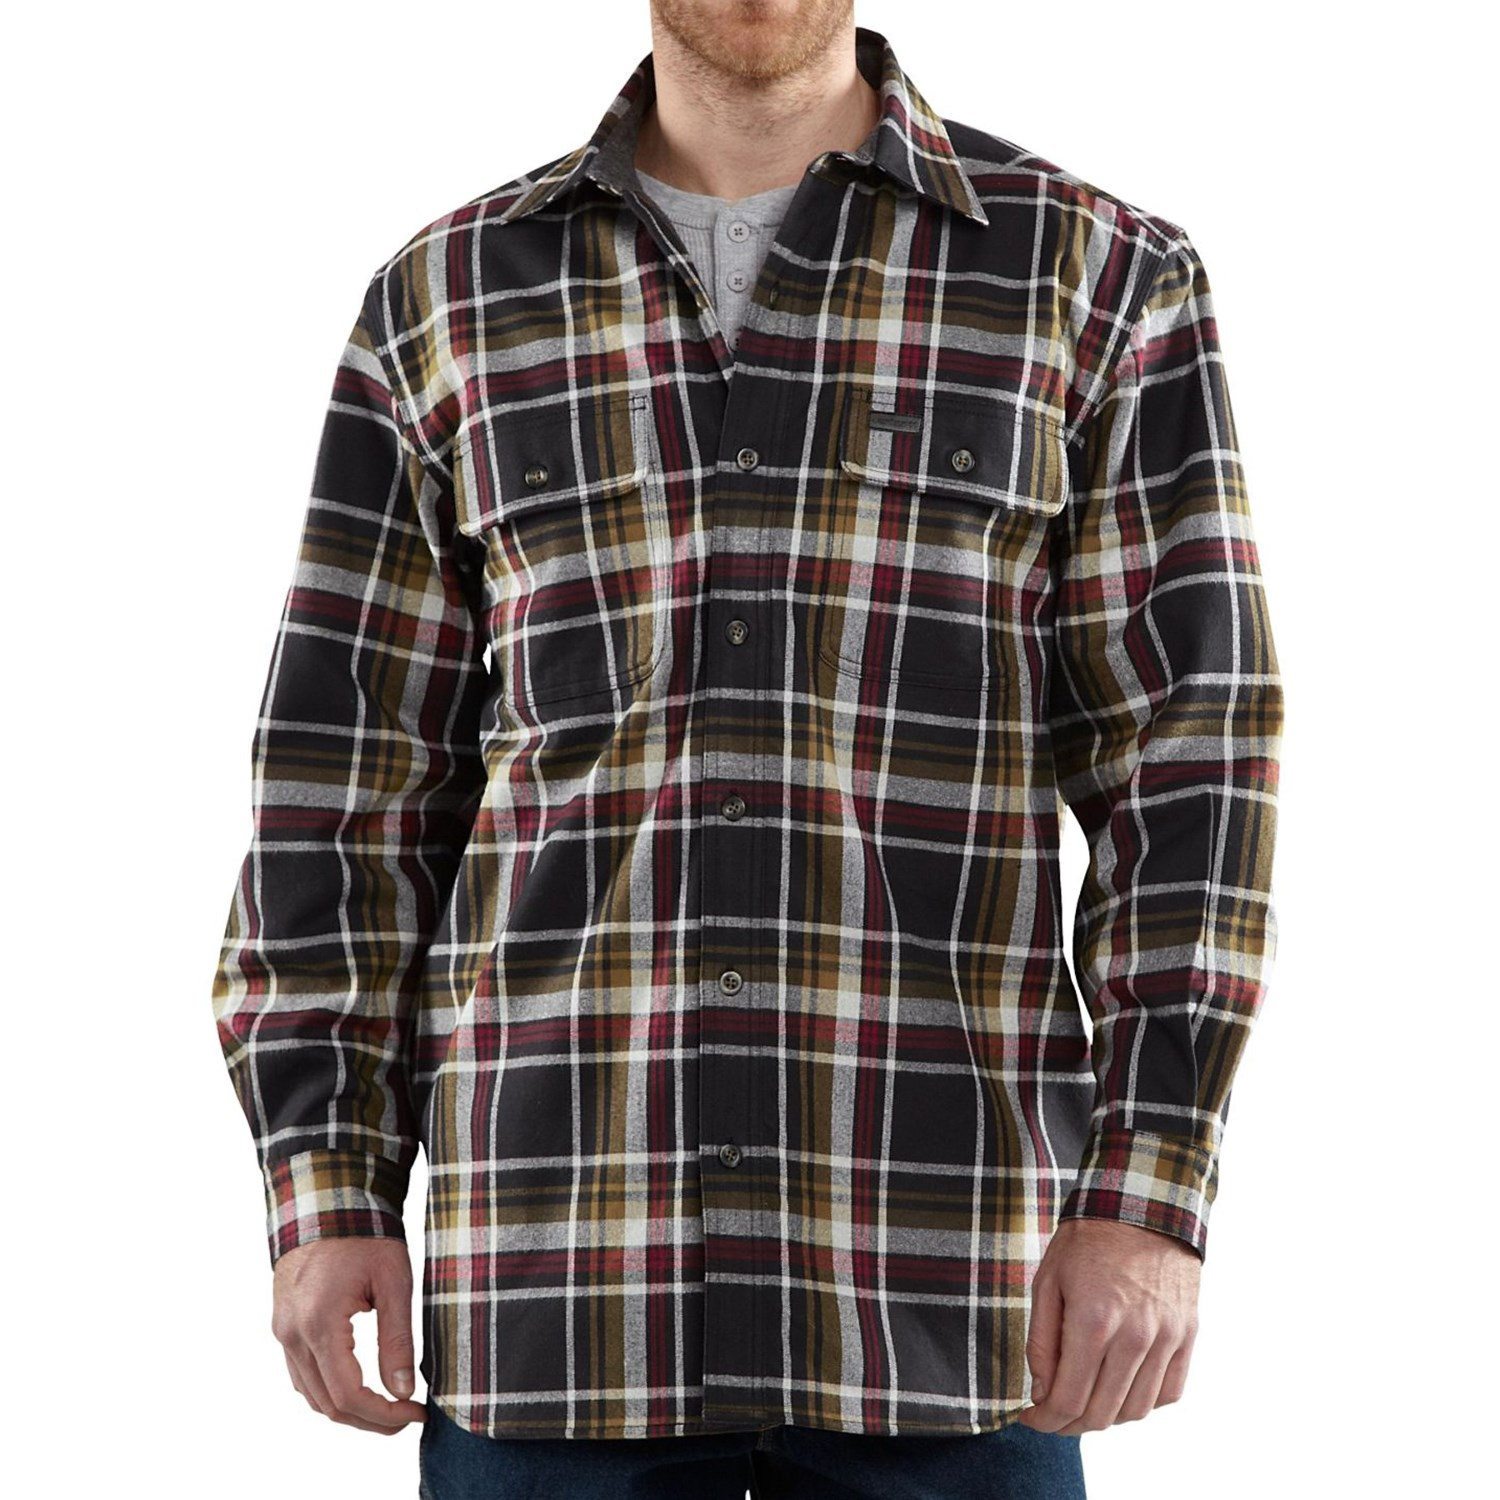 Carhartt youngstown flannel shirt jacket for men 7248u for Mens insulated flannel shirts